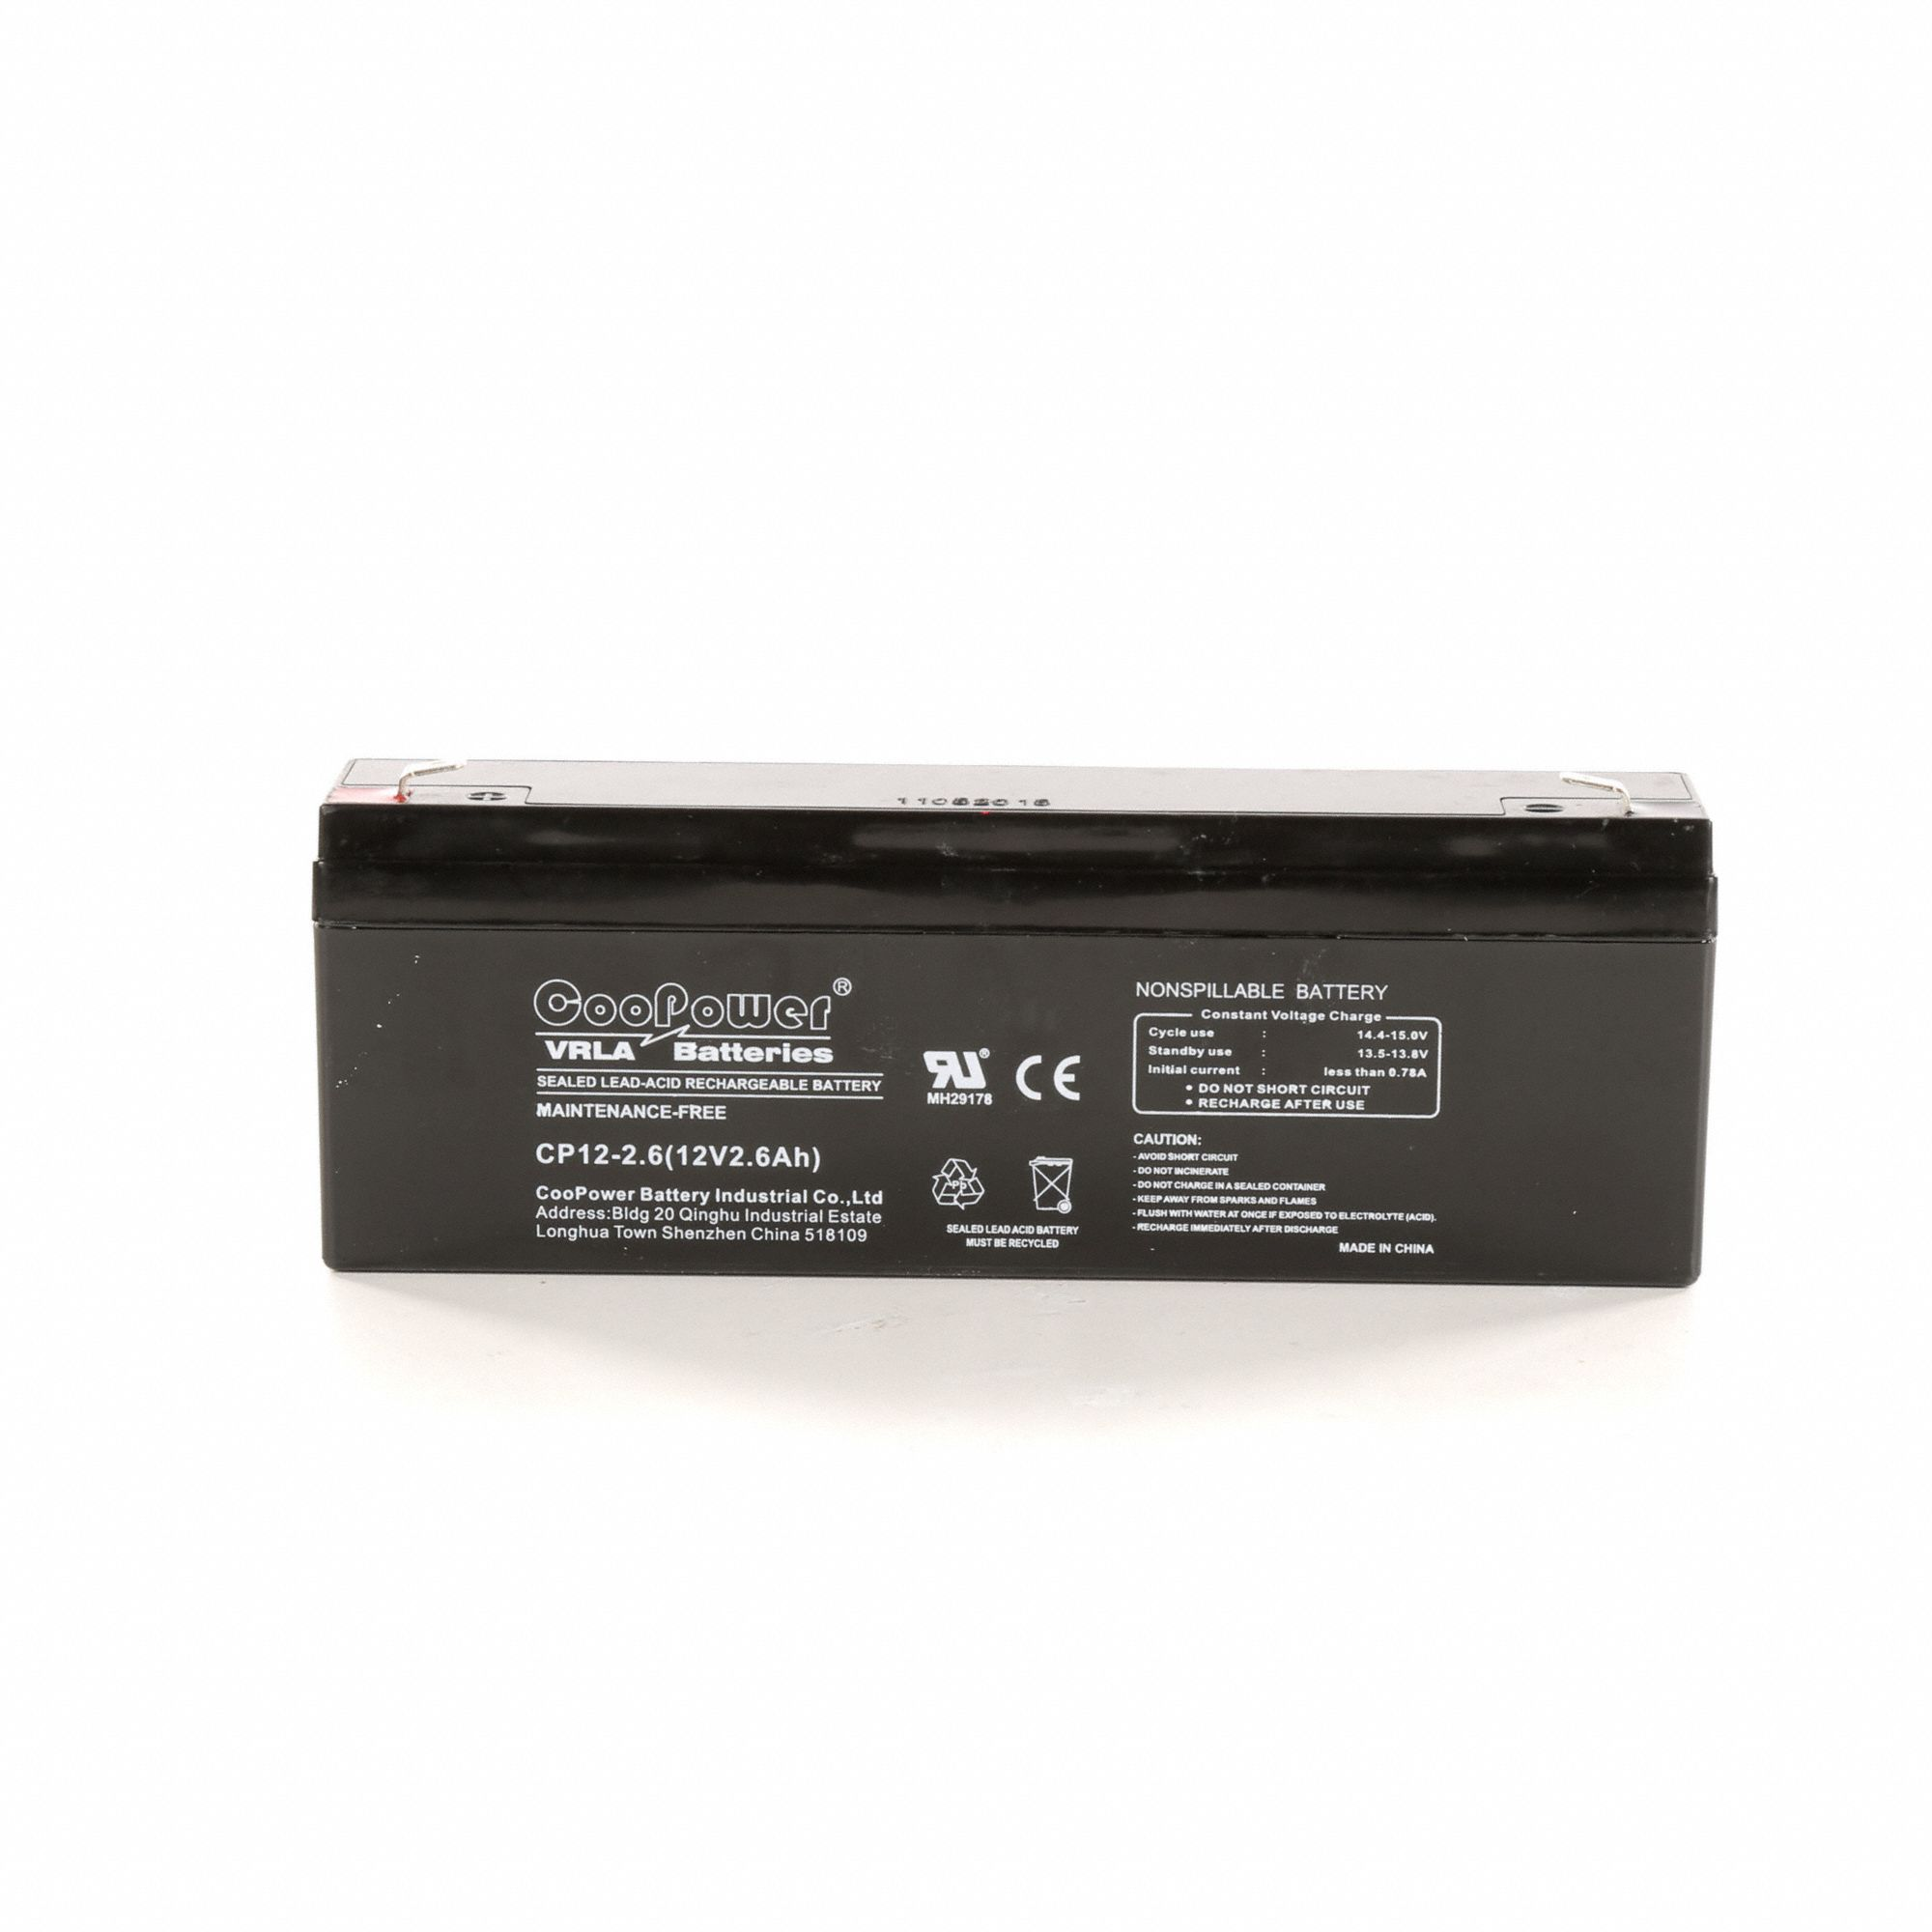 Grainger Approved 12vdc Sealed Lead Acid Battery 26ah 0187 The Circuit Can Be Used To Charge 12v Batteries Faston 5eff9